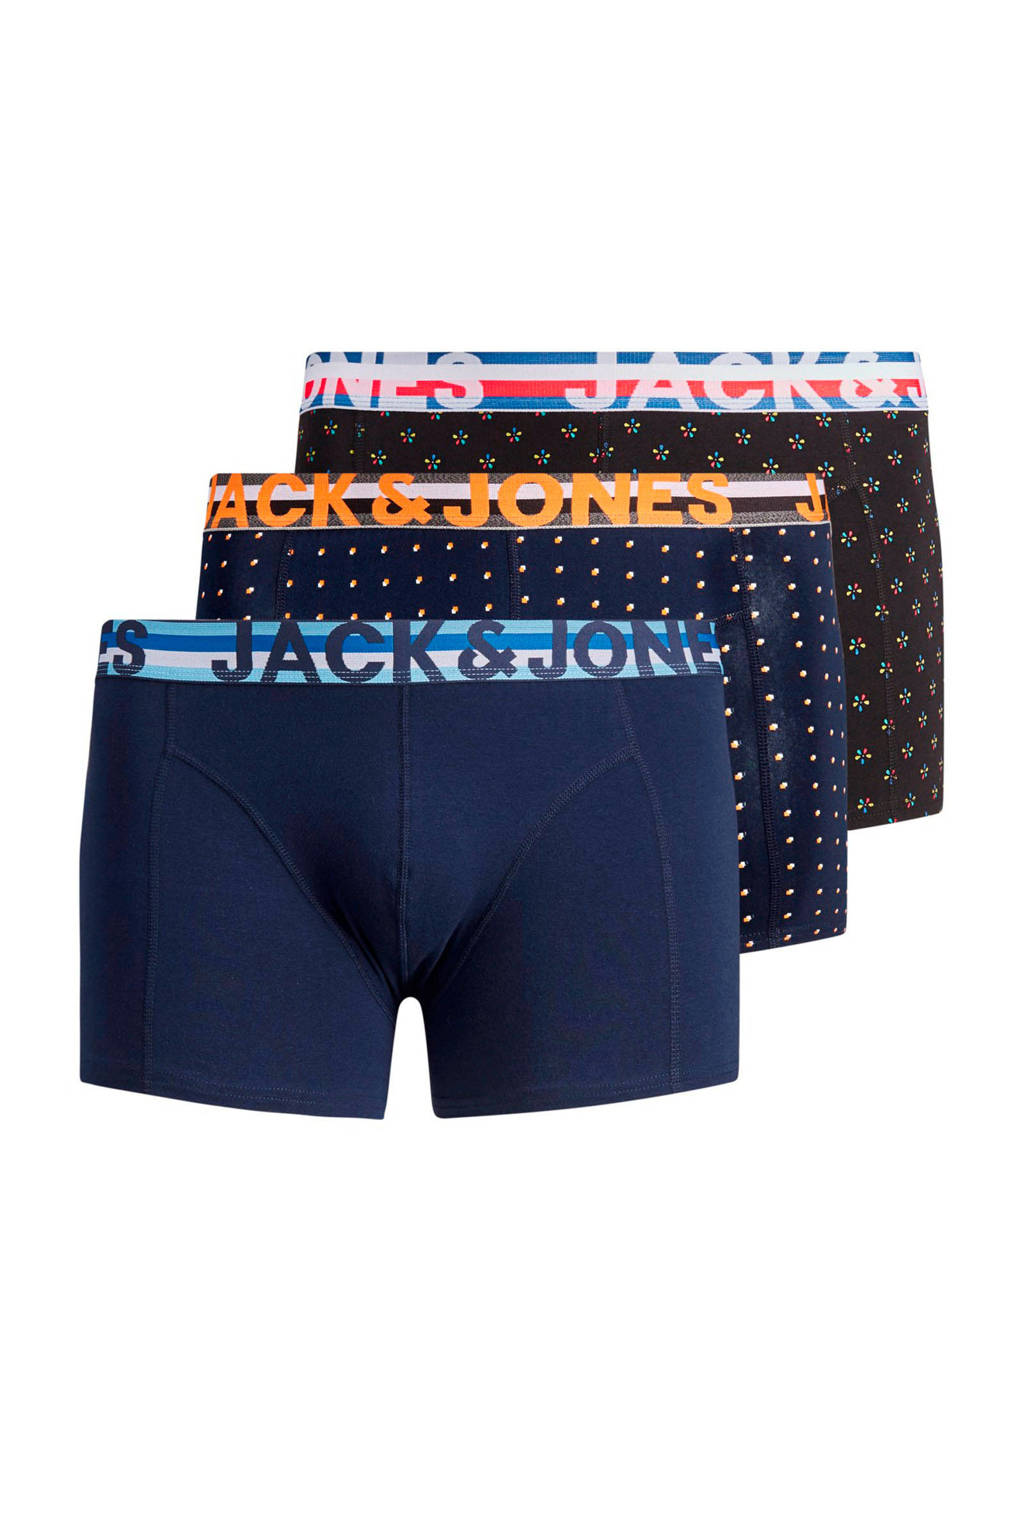 JACK & JONES PLUS SIZE boxershort (set van 3), Marine